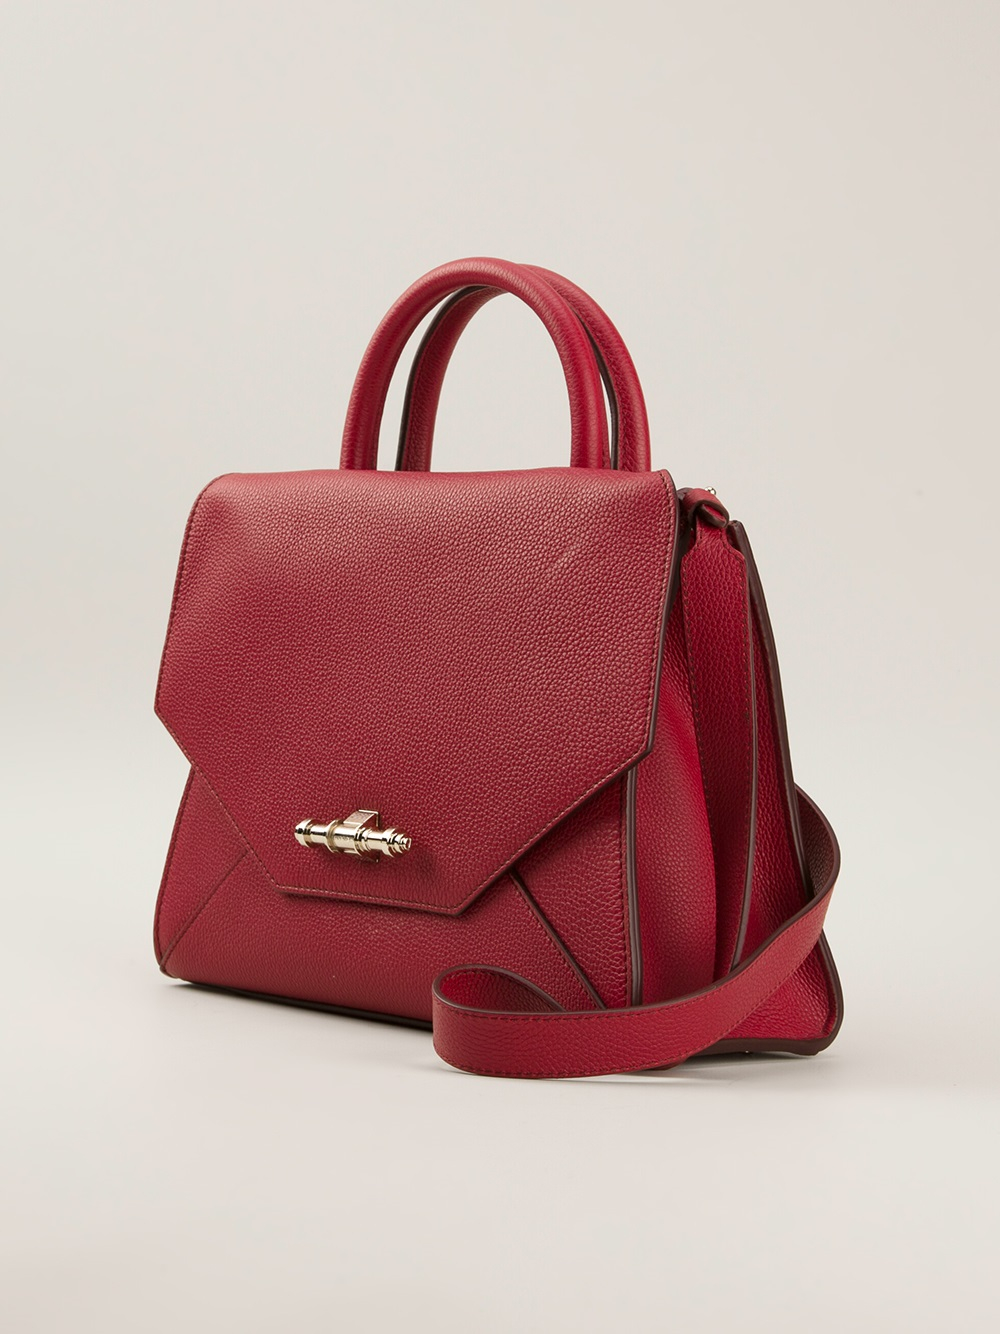 78244806cb Lyst - Givenchy Obsedia Tote in Red